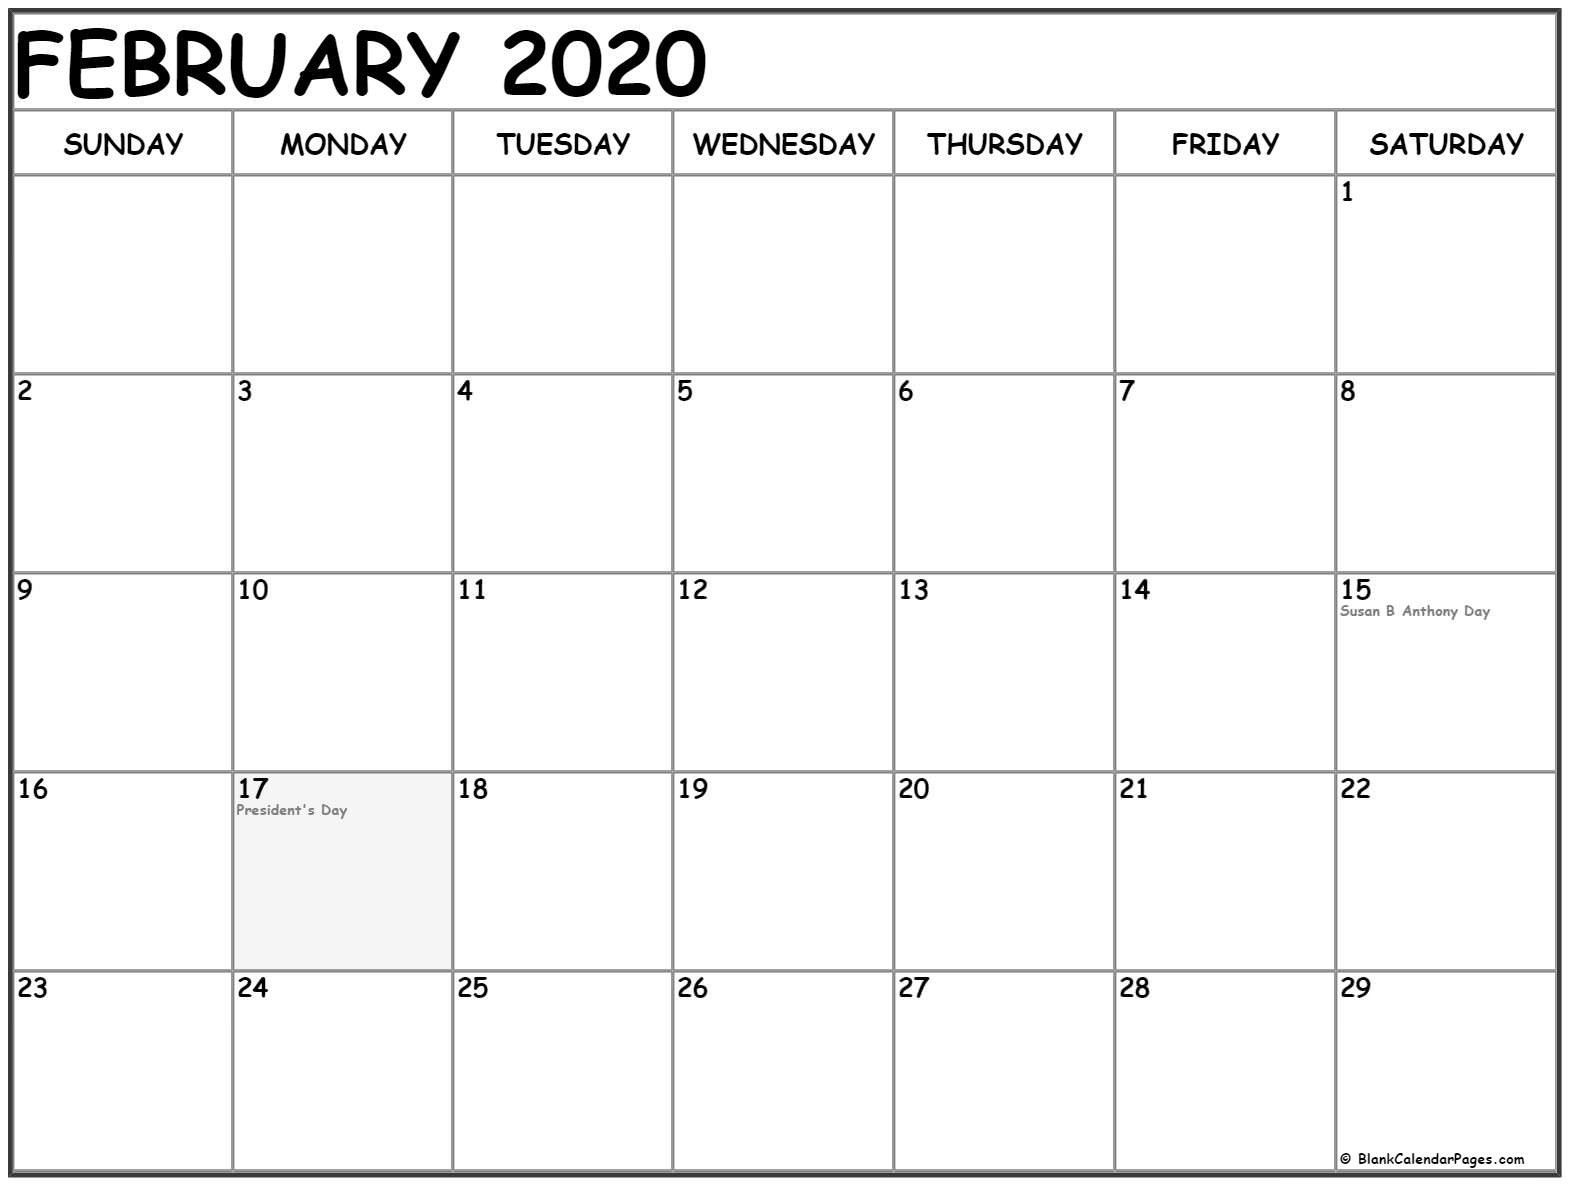 Worldwide February Holidays 2020 Calendar With Festival Dates